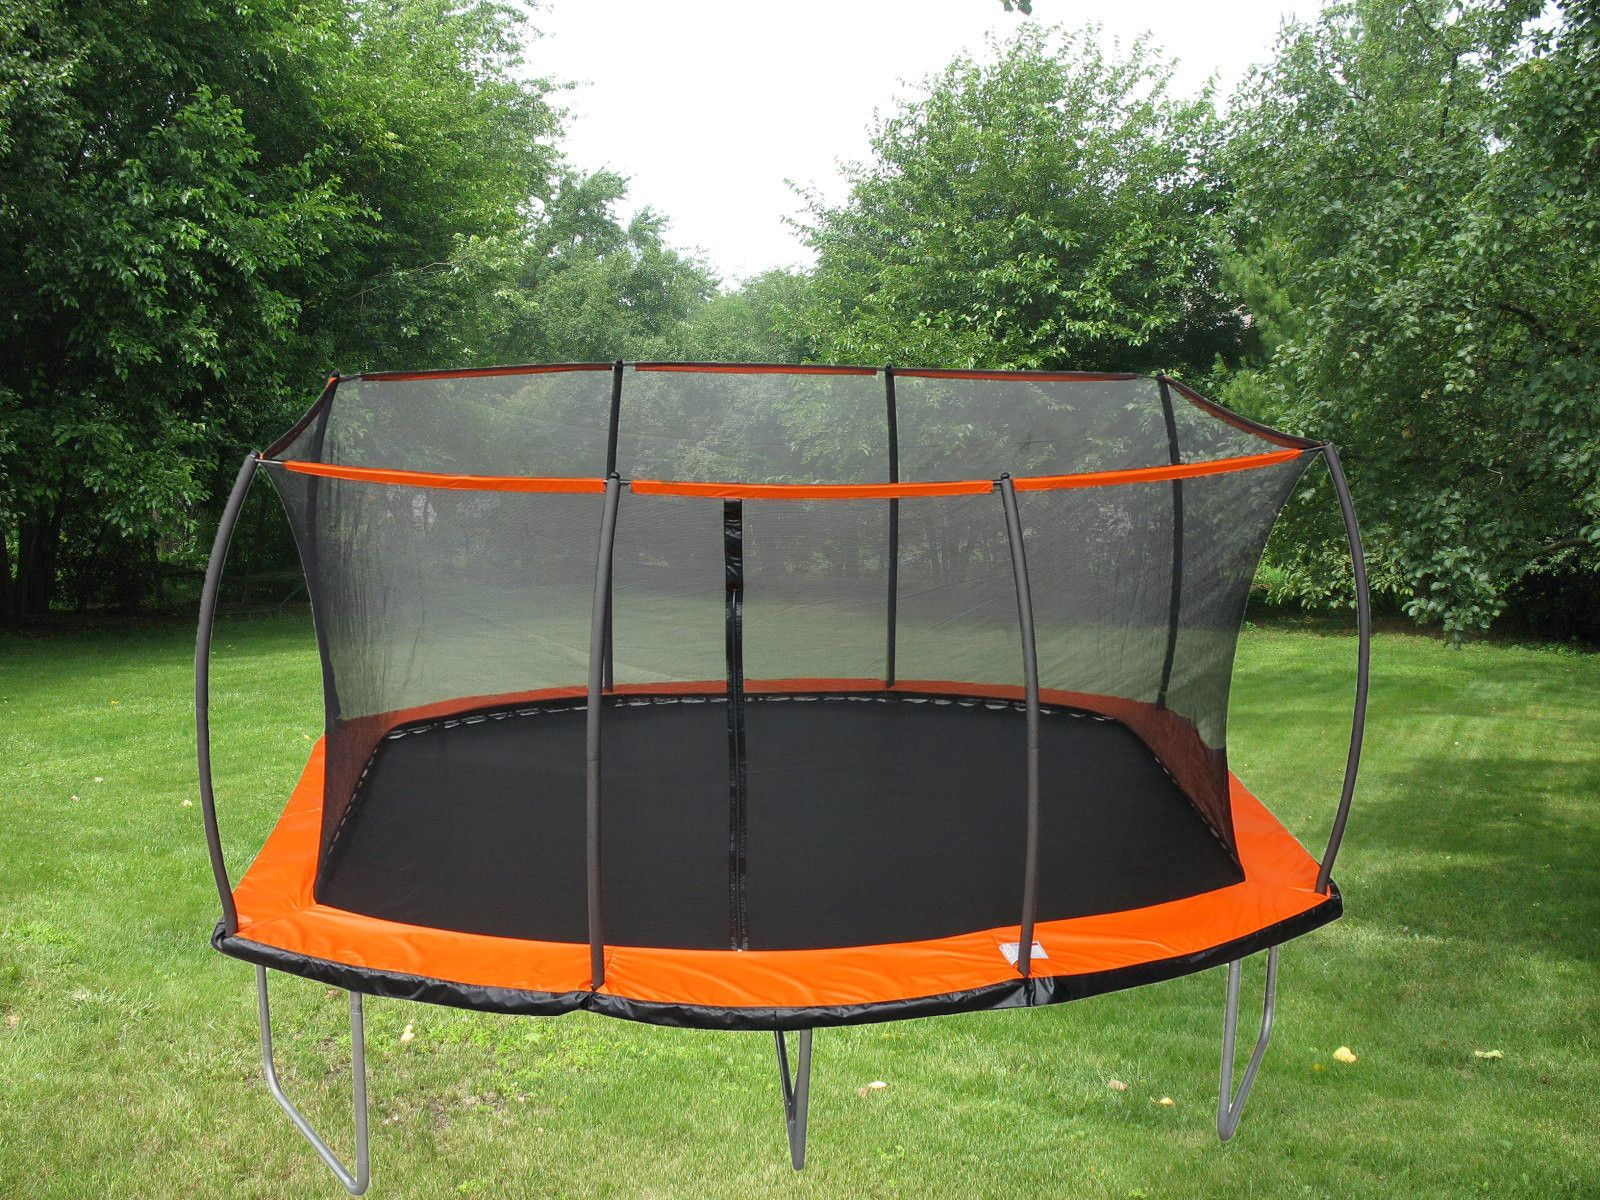 15ft X 10ft Rectangular Trampoline Patented Safety Net Combo Best Trampoline Backyard Trampoline Rectangle Trampoline